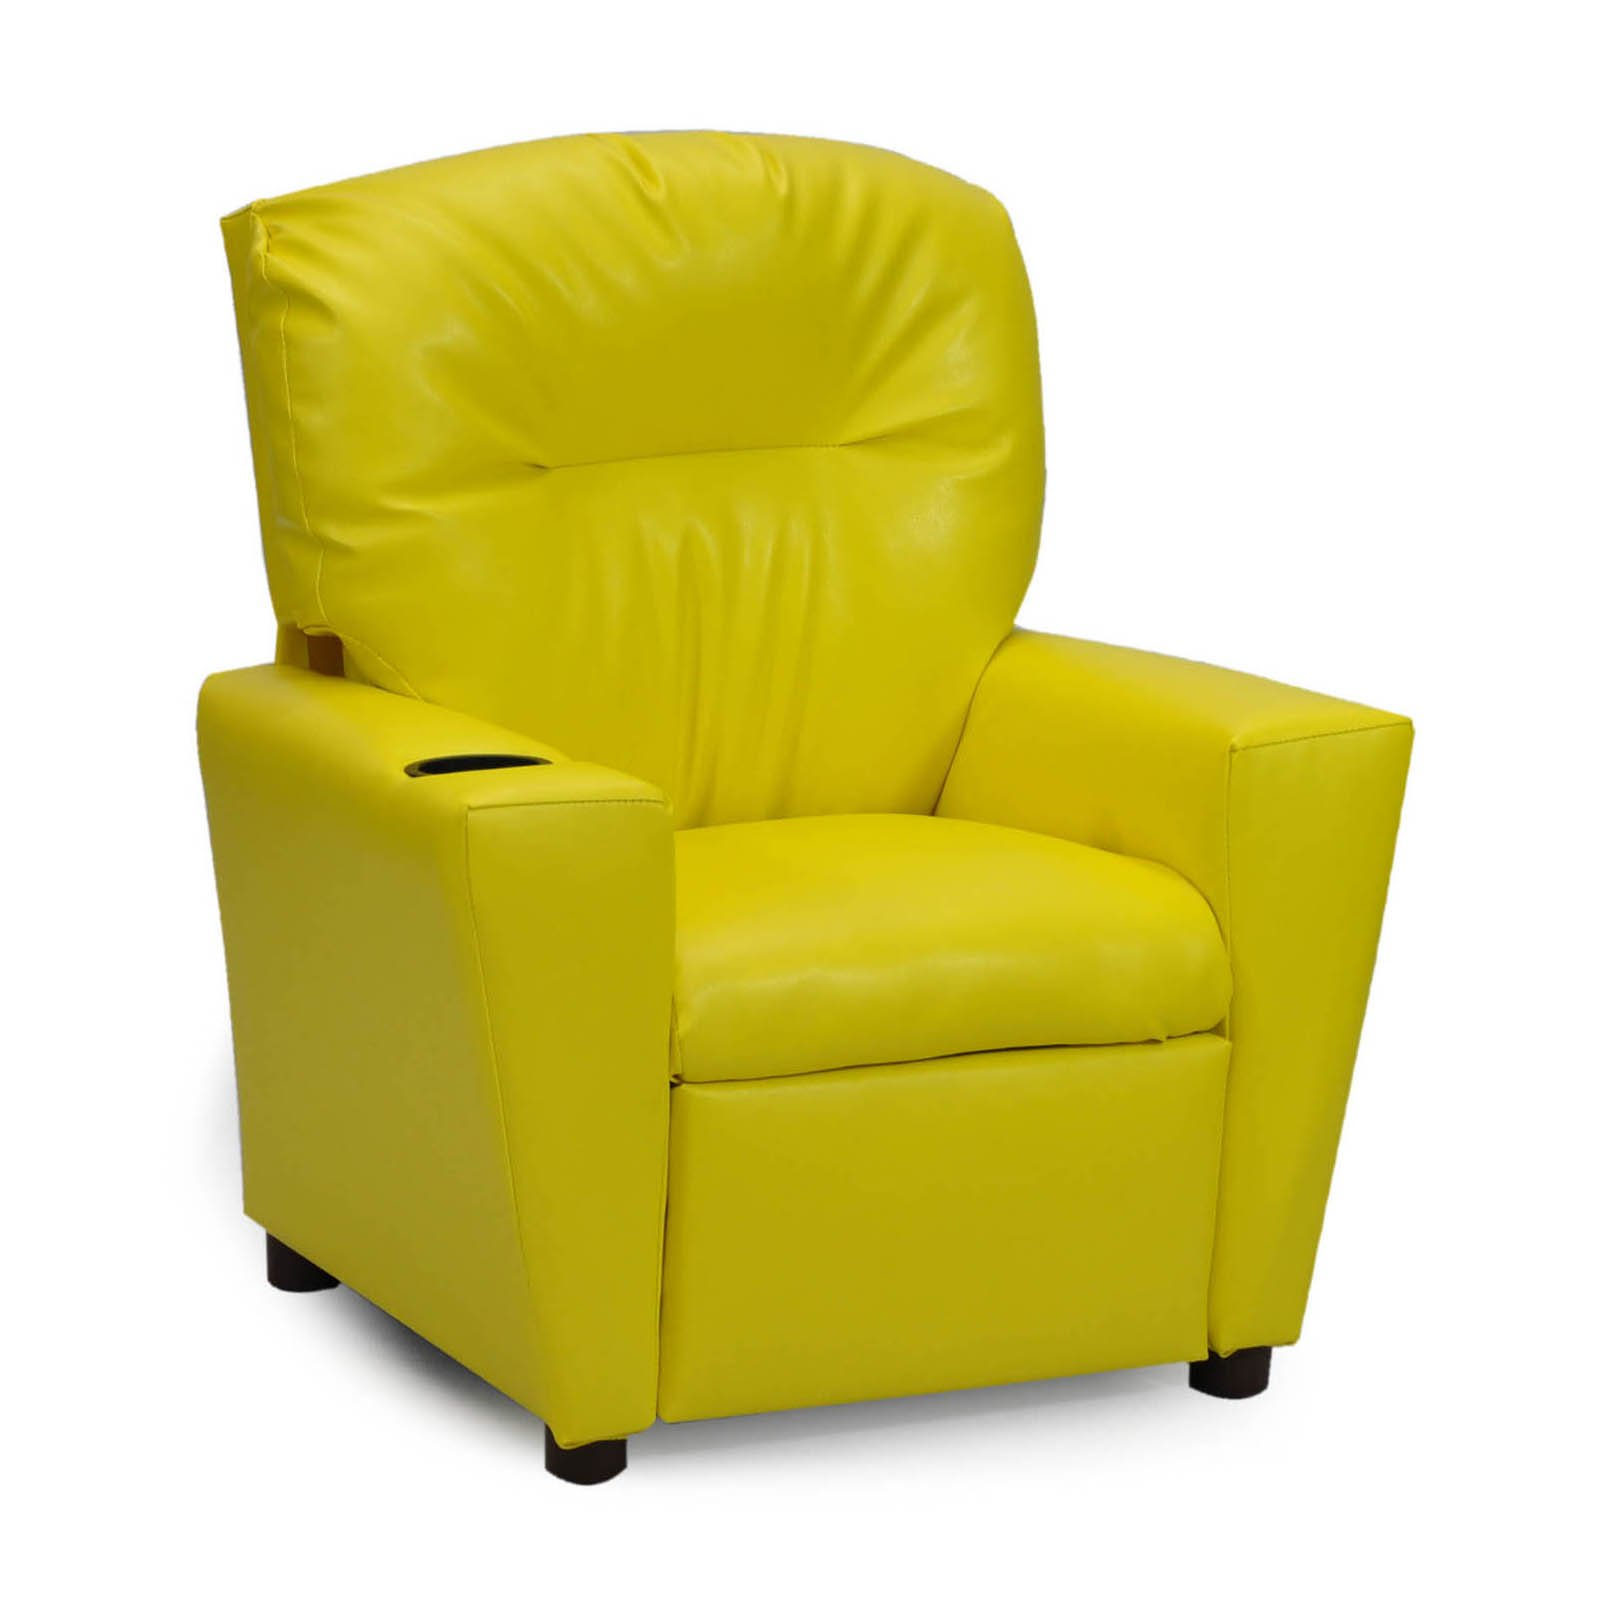 Kidz World Recliner with Cup Holder - Yellow Vinyl